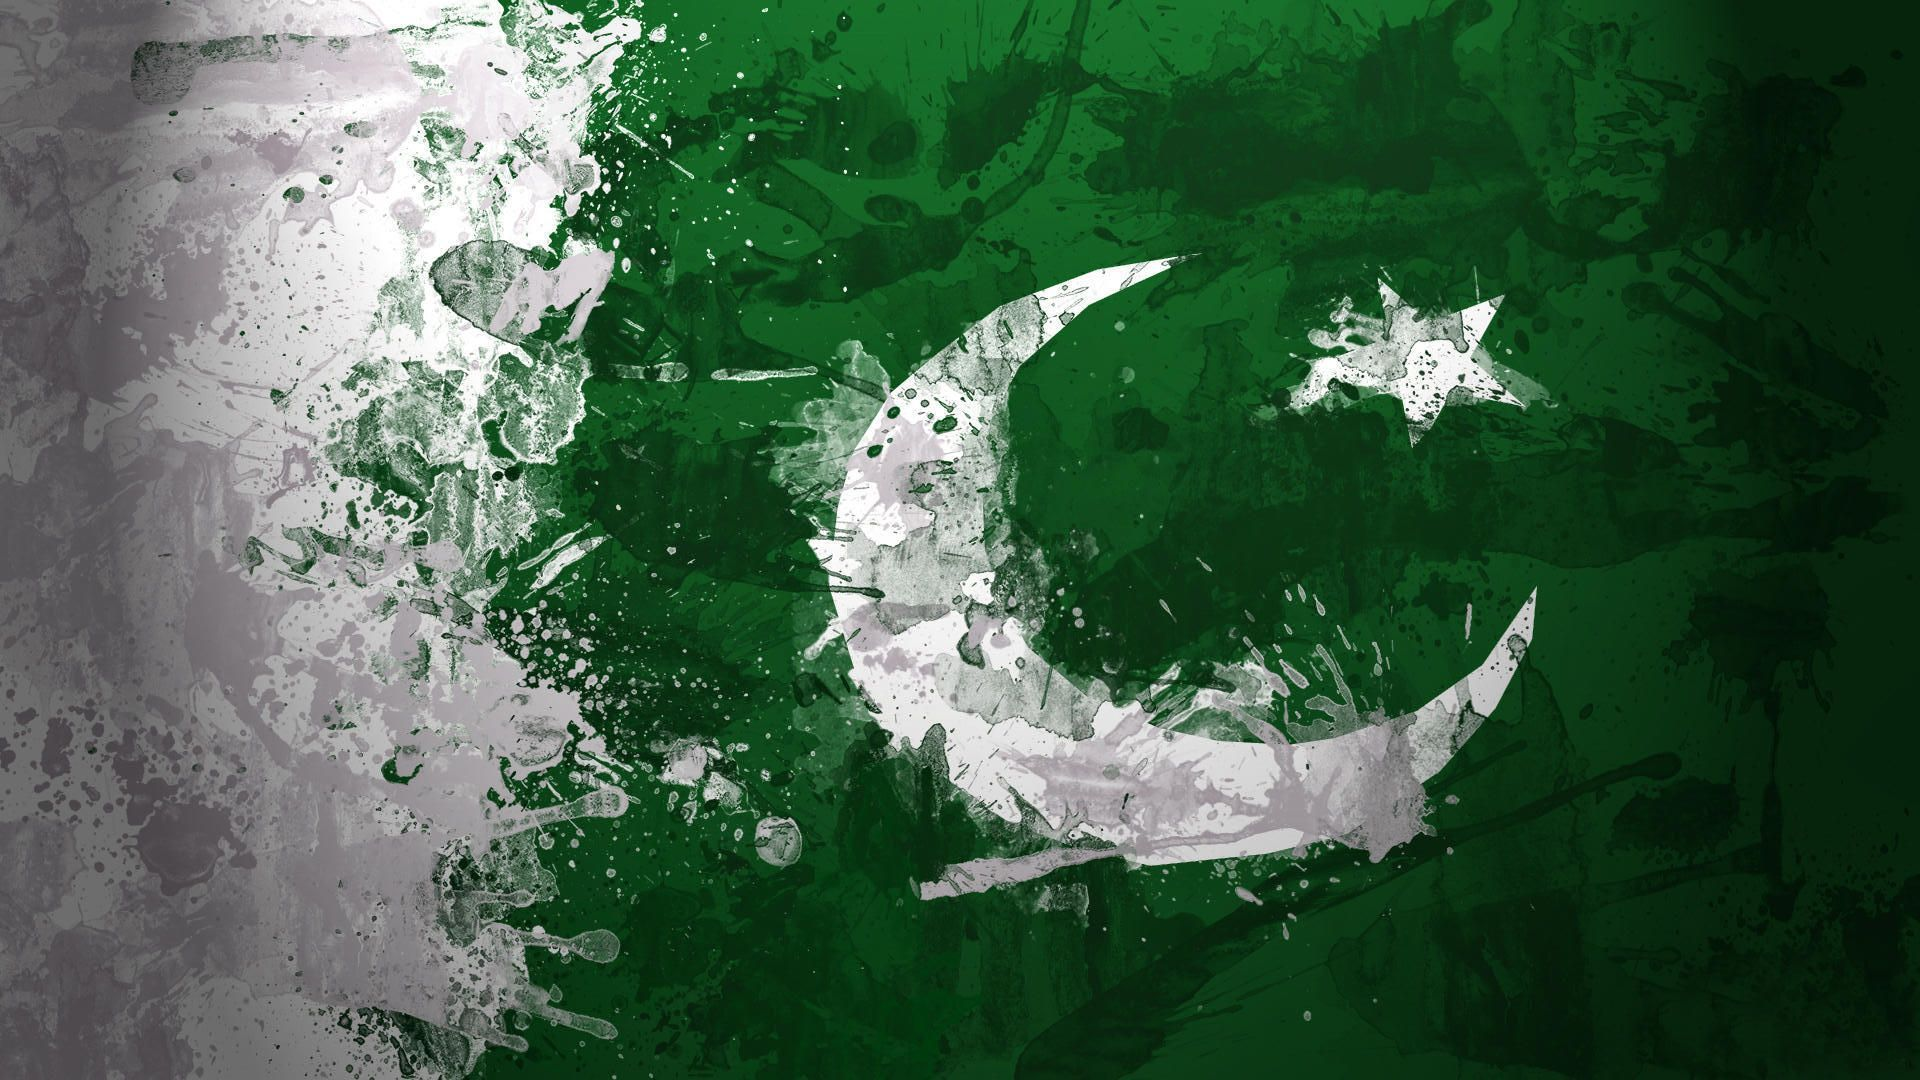 Pakistan Flag Image Wallpaper